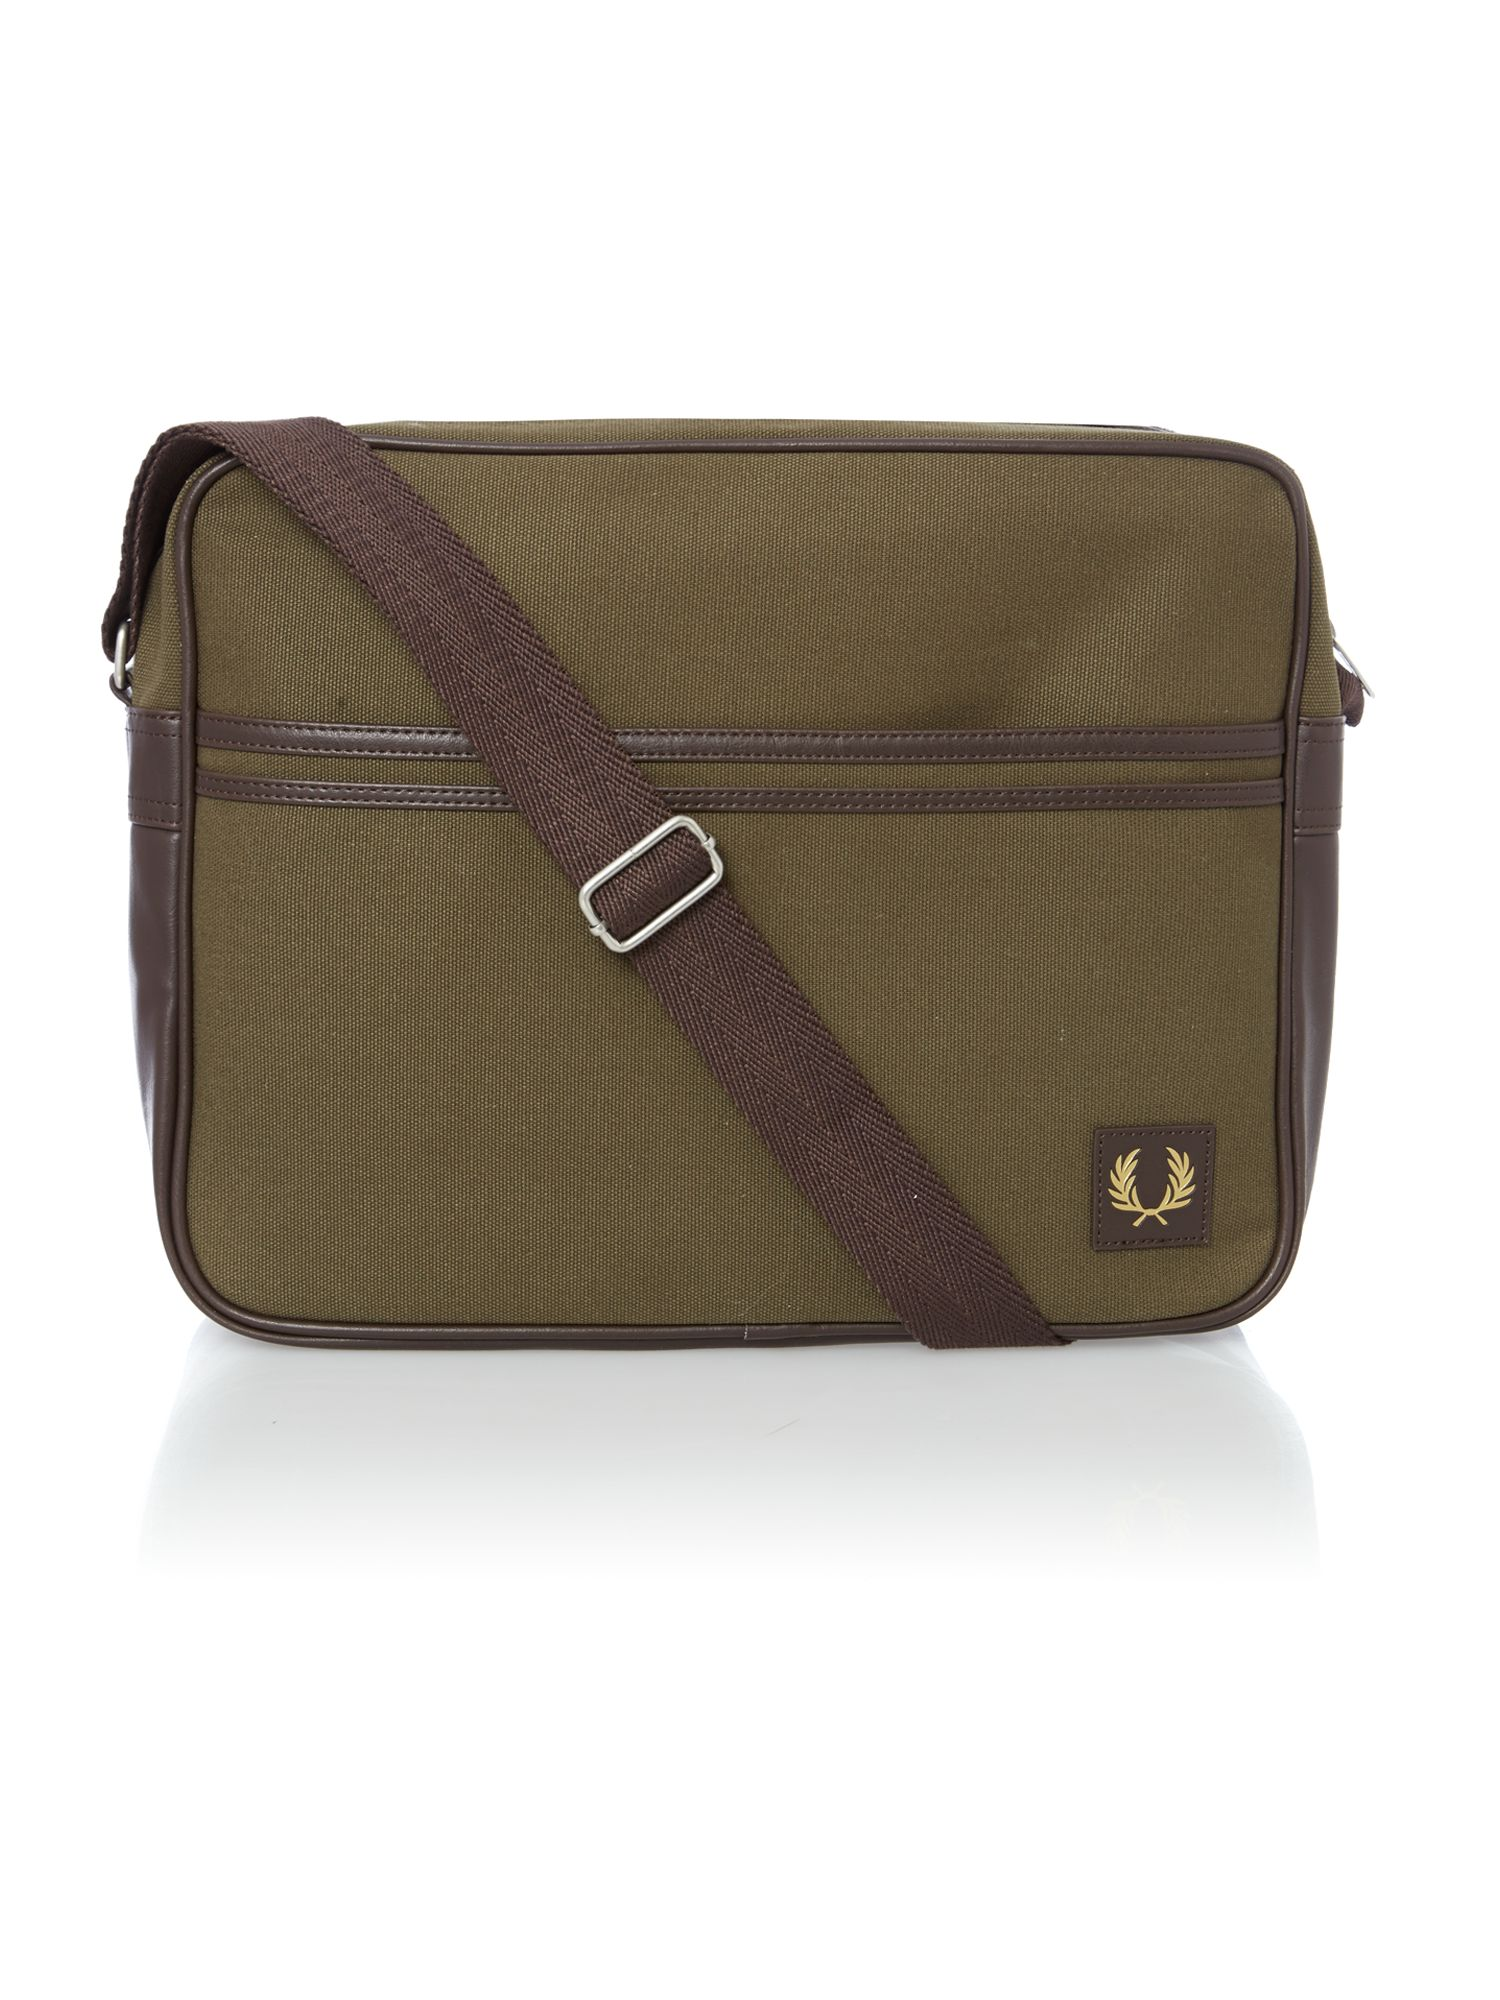 Classic canvas shoulder bag